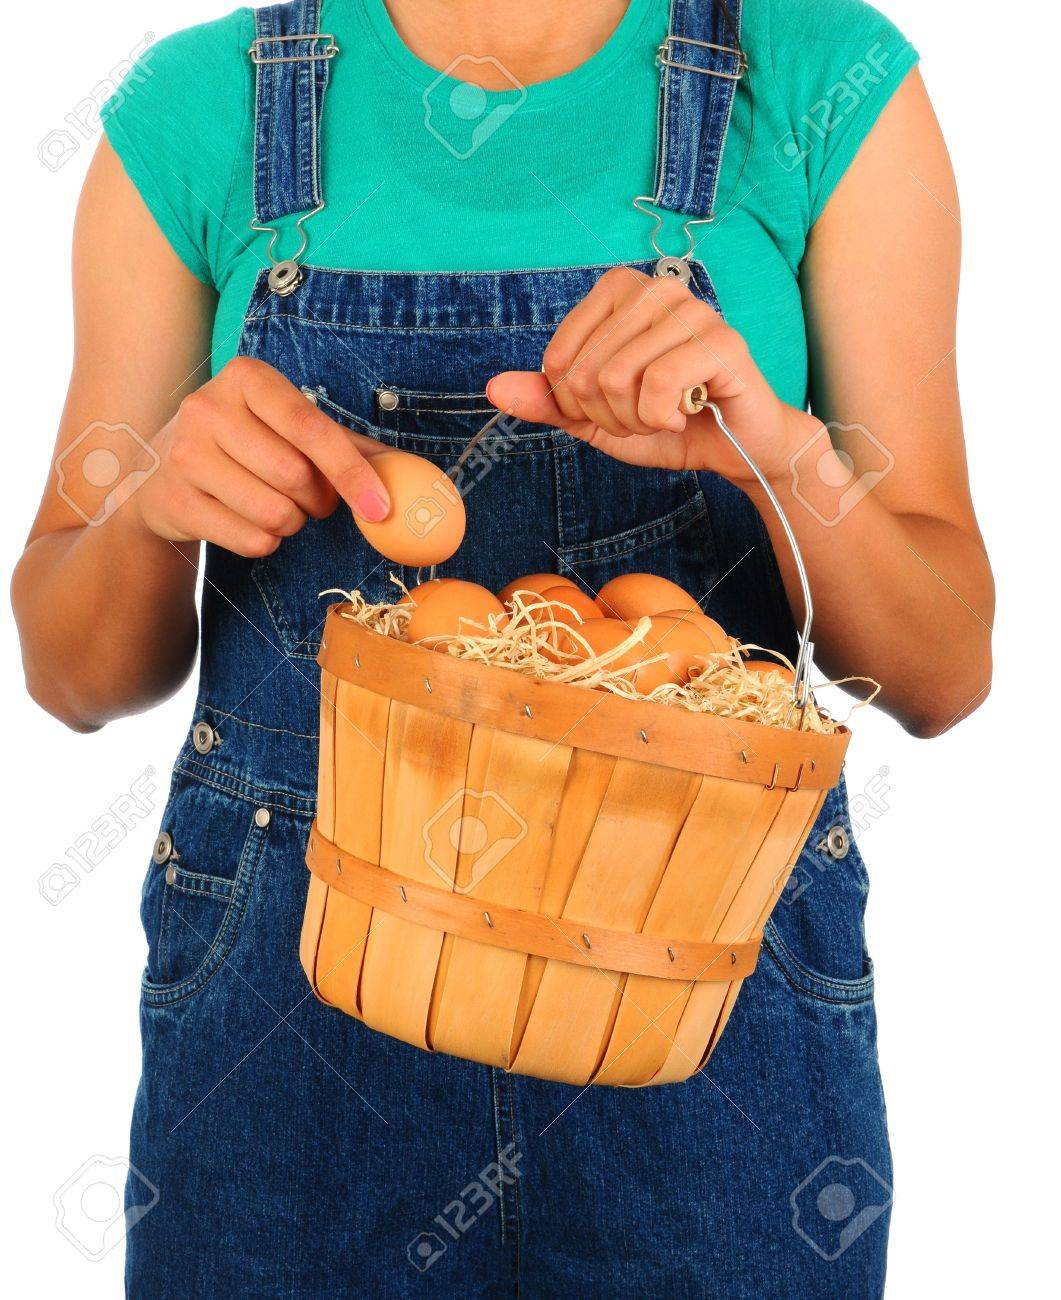 Closeup of a Farm Girl putting a fresh picked egg into a basket held in front of her body. Girl is wearing overalls and a t-shirt and is unrecognizable. Stock Photo - 13877952